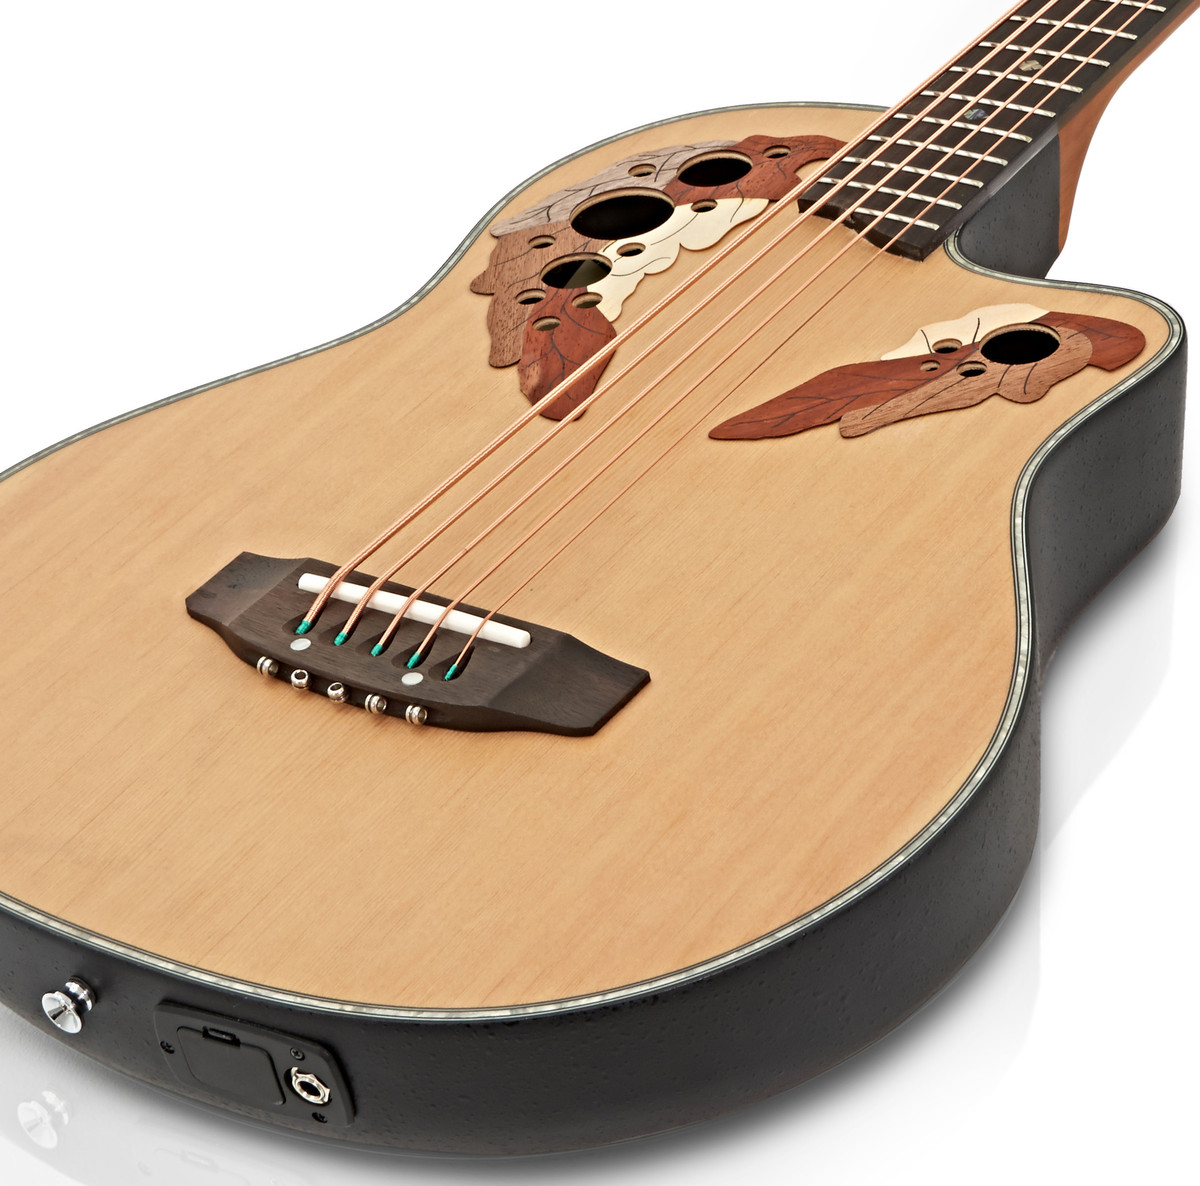 roundback electro acoustic 5 string bass guitar by gear4music b stock at. Black Bedroom Furniture Sets. Home Design Ideas